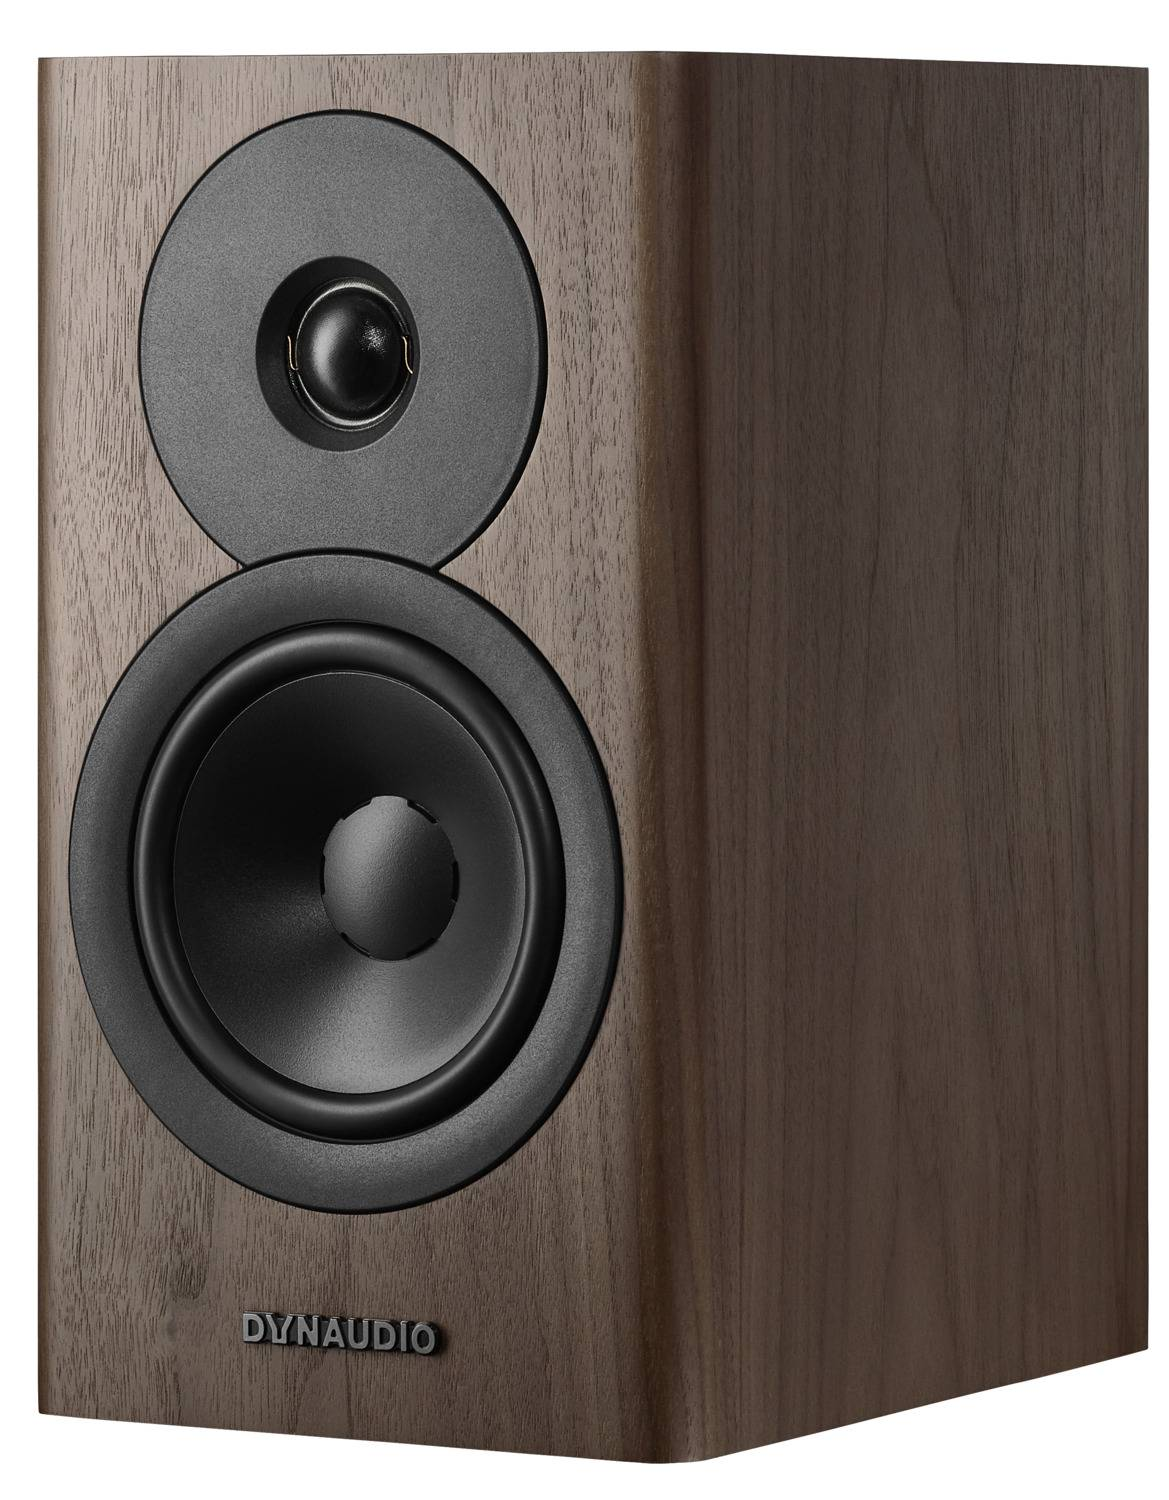 Evoke 10 Evoke Serie Series Dynaudio Lautsprecher Speaker